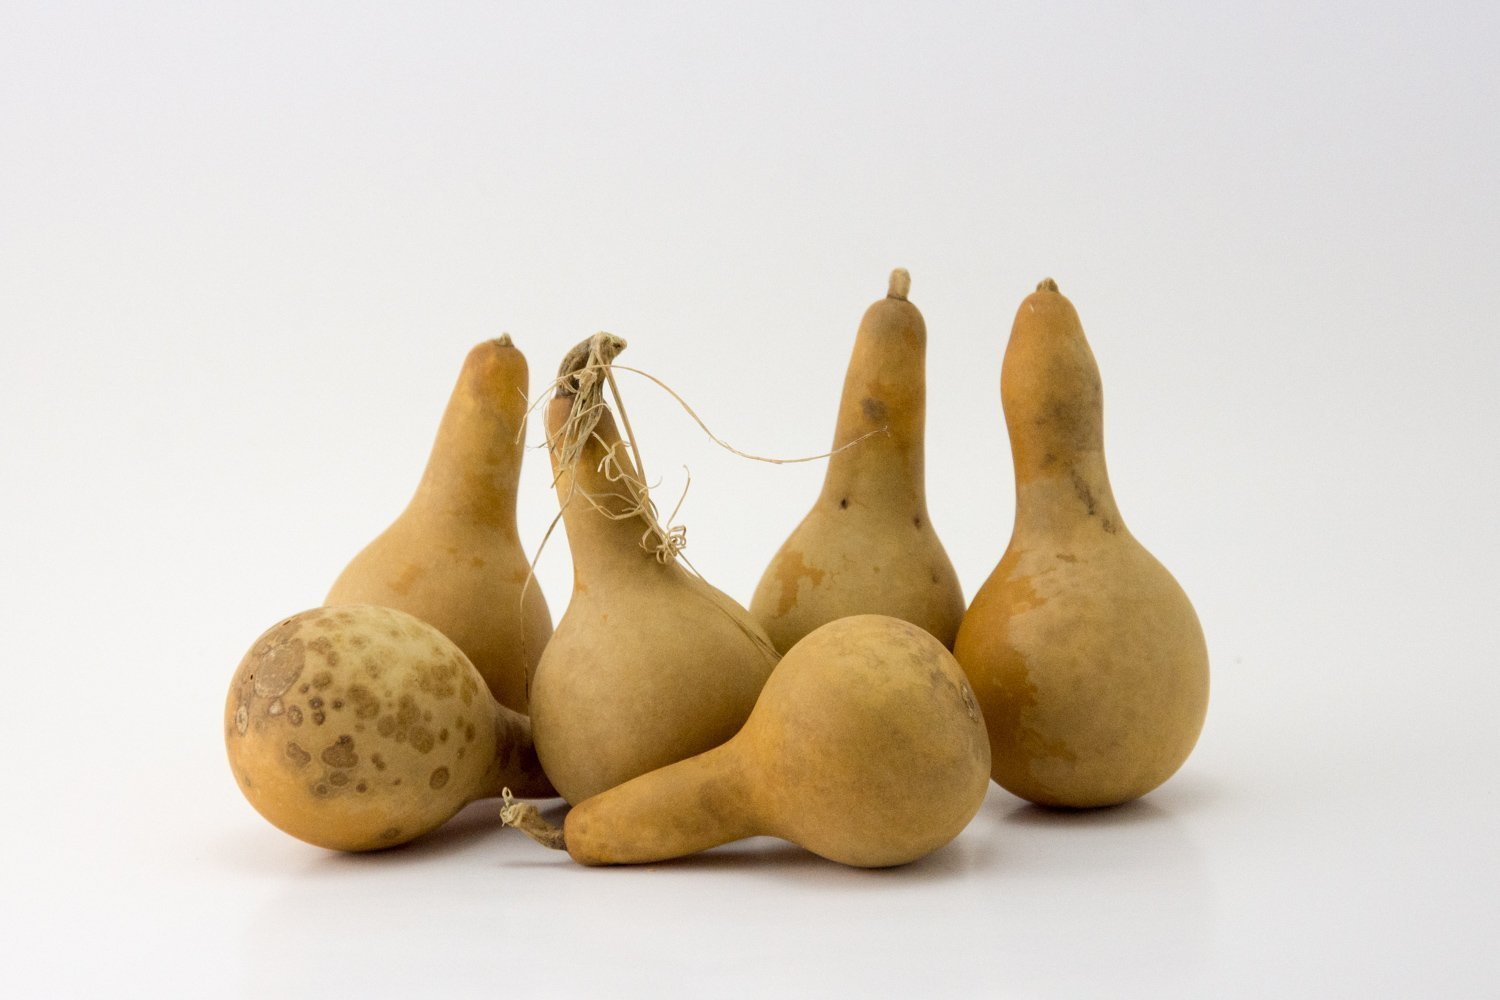 Mini Dipper Gourds for your Craft Project, Box of 15